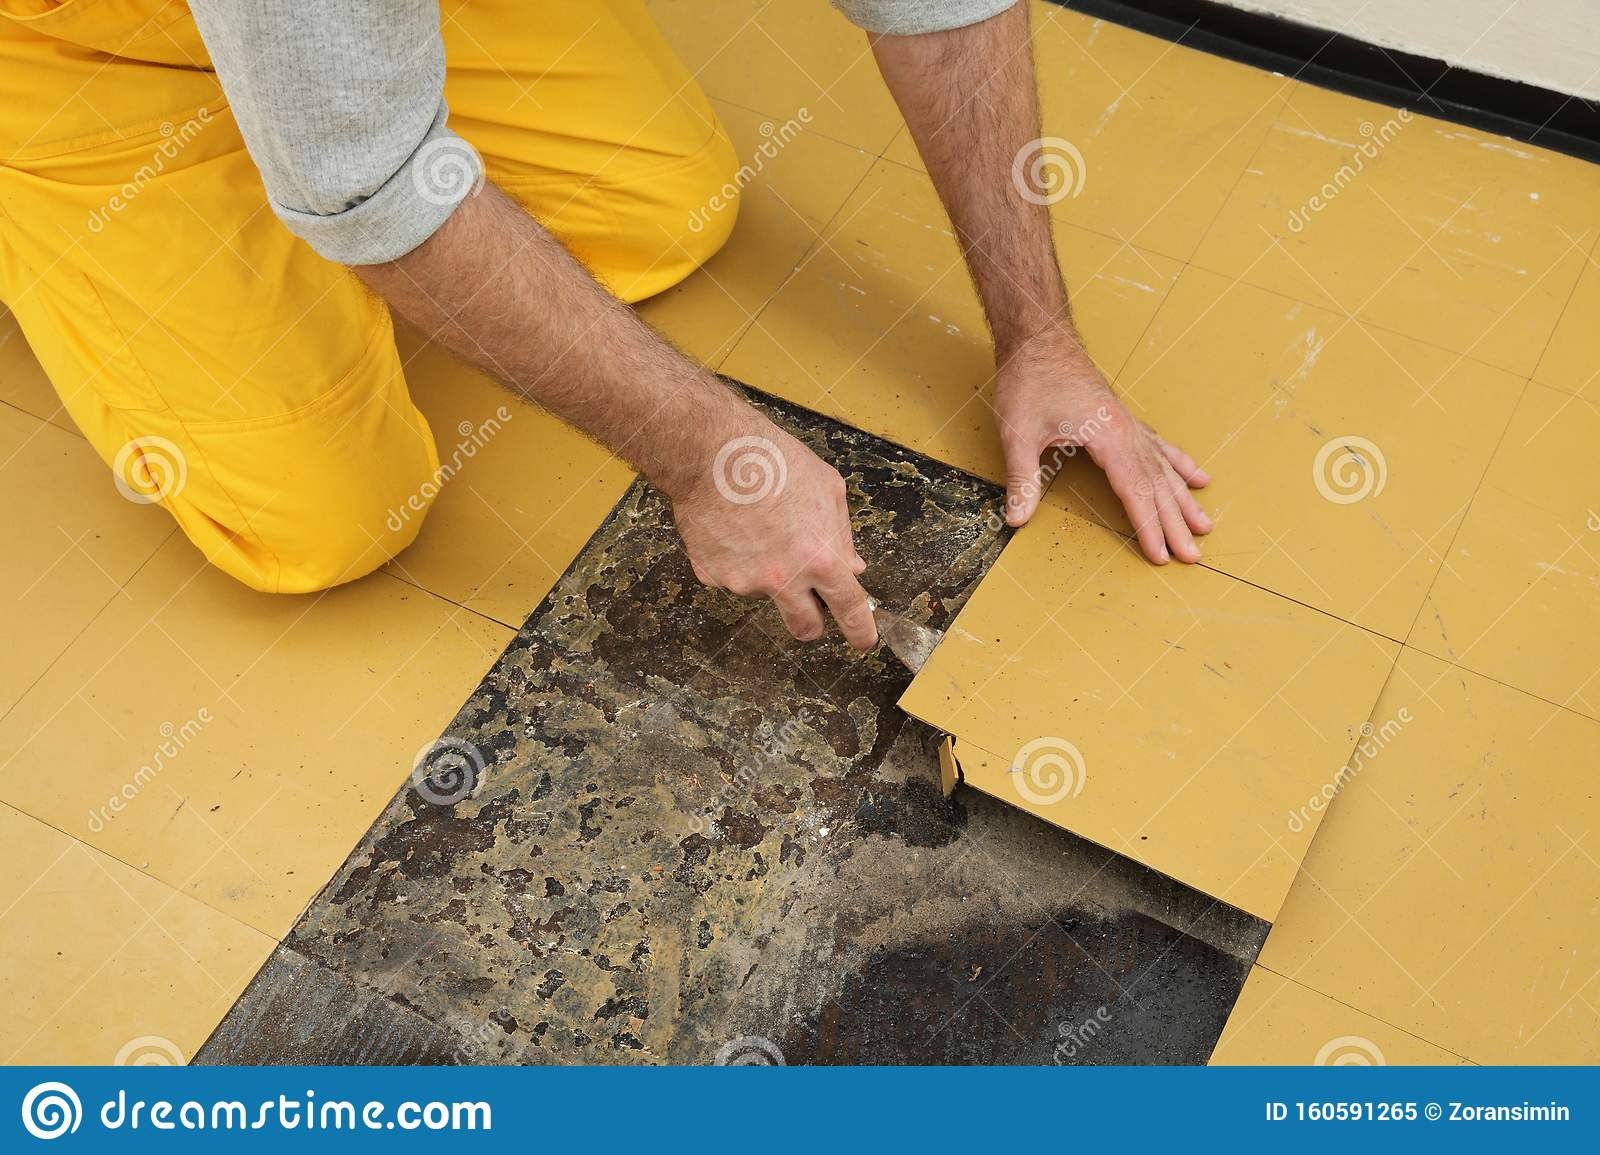 Old Vinyl Tiles Removal From Floor In A Room Or Kitchen Stock